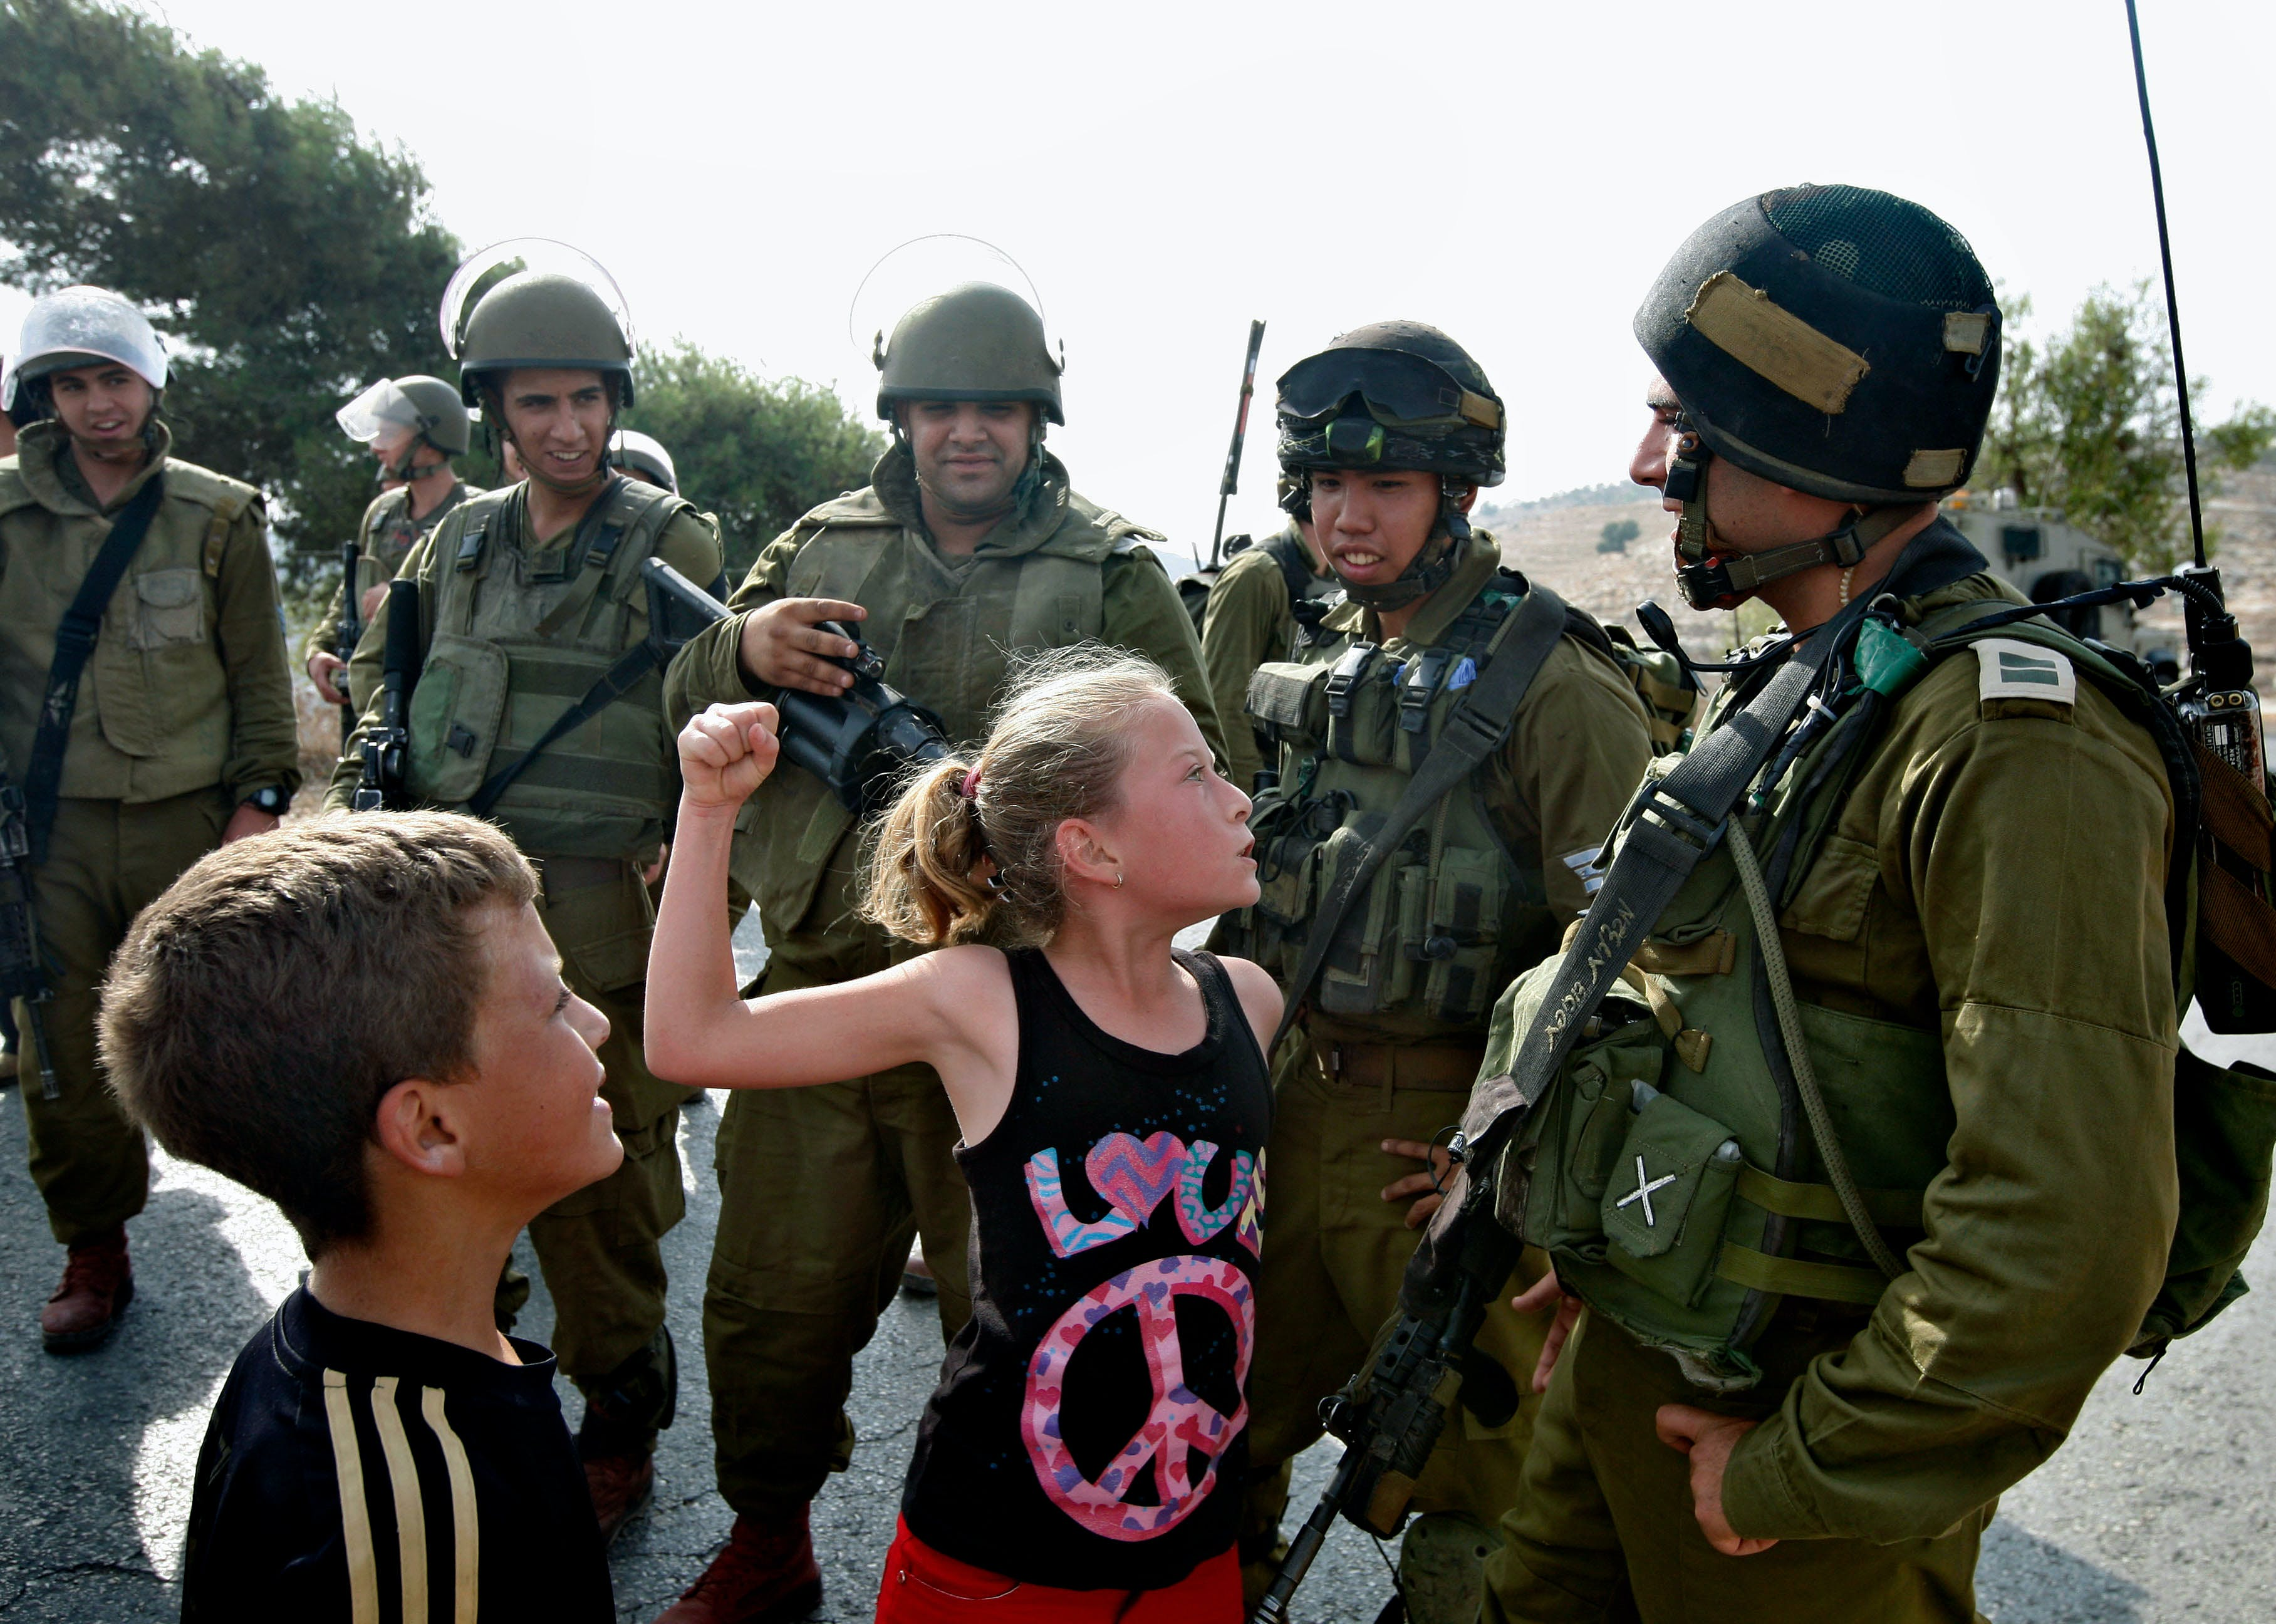 In this Nov. 2, 2012 photo, then 12-year-old Ahed Tamimi tries to punch an Israeli soldier during a protest, in the West Bank village of Nabi Saleh. Tamimi is to go on trial Tuesday, Feb. 13, 2018, before an Israeli military court, for slapping and punching two Israeli soldiers in December. Palestinians say her actions embody their David vs. Goliath struggle against a brutal military occupation, while Israel portrays them as a staged provocation meant to embarrass its military. Tamimi is one of an estimated 350 Palestinian minors in Israeli jails. (AP Photo/Majdi Mohammed)